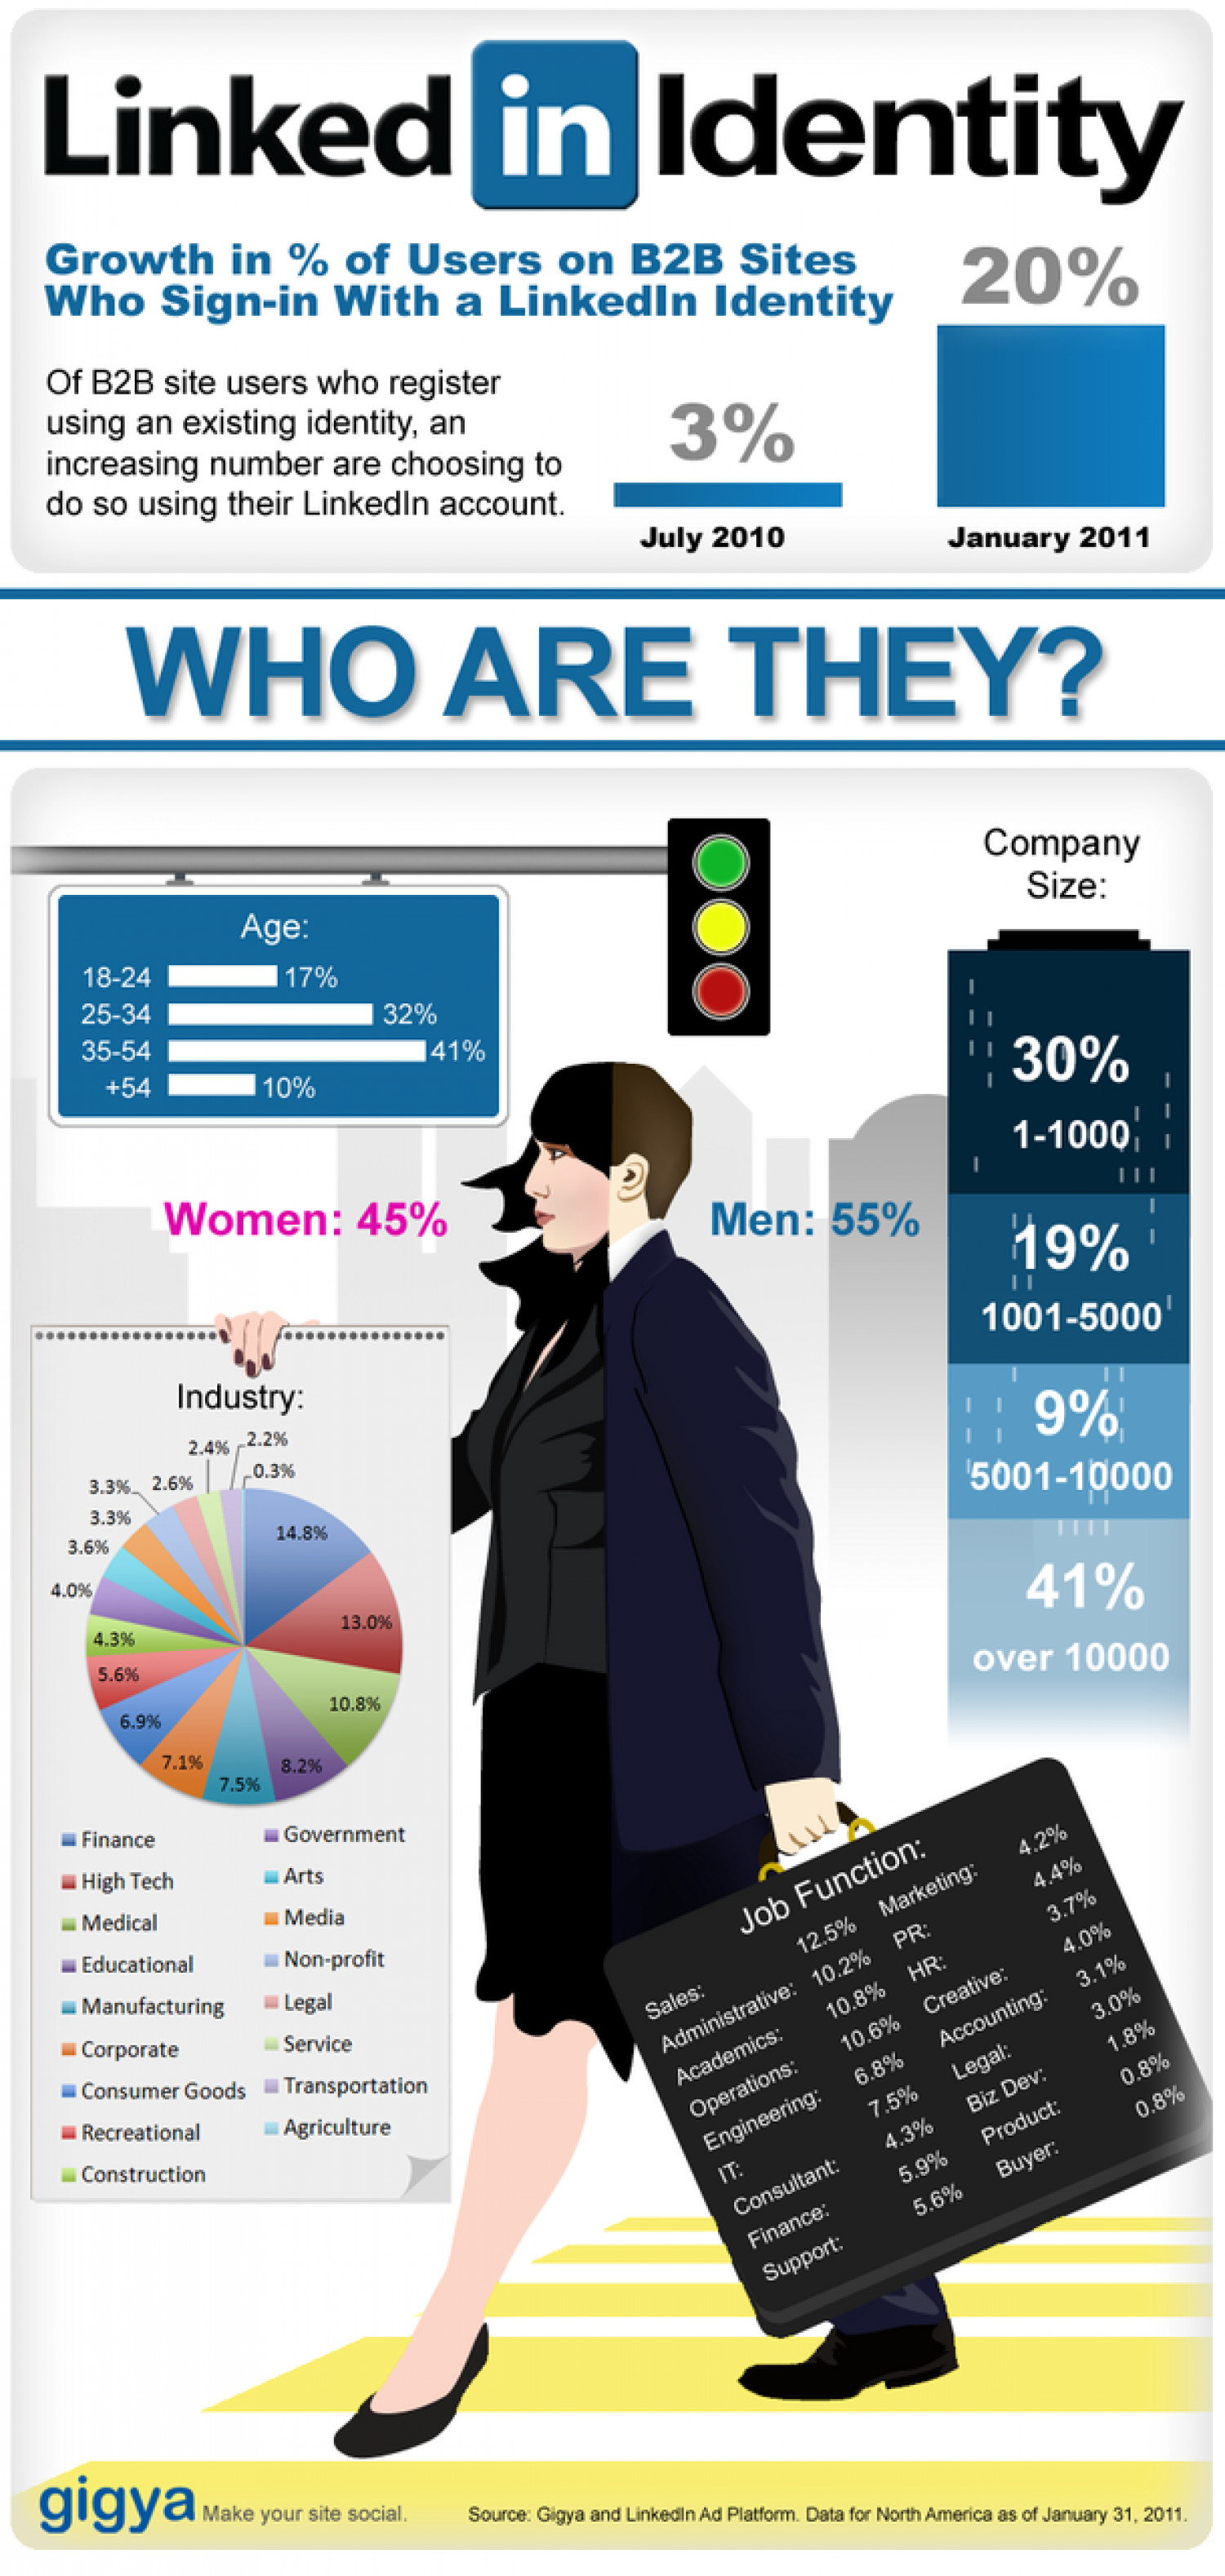 Linked In Identity Infographic